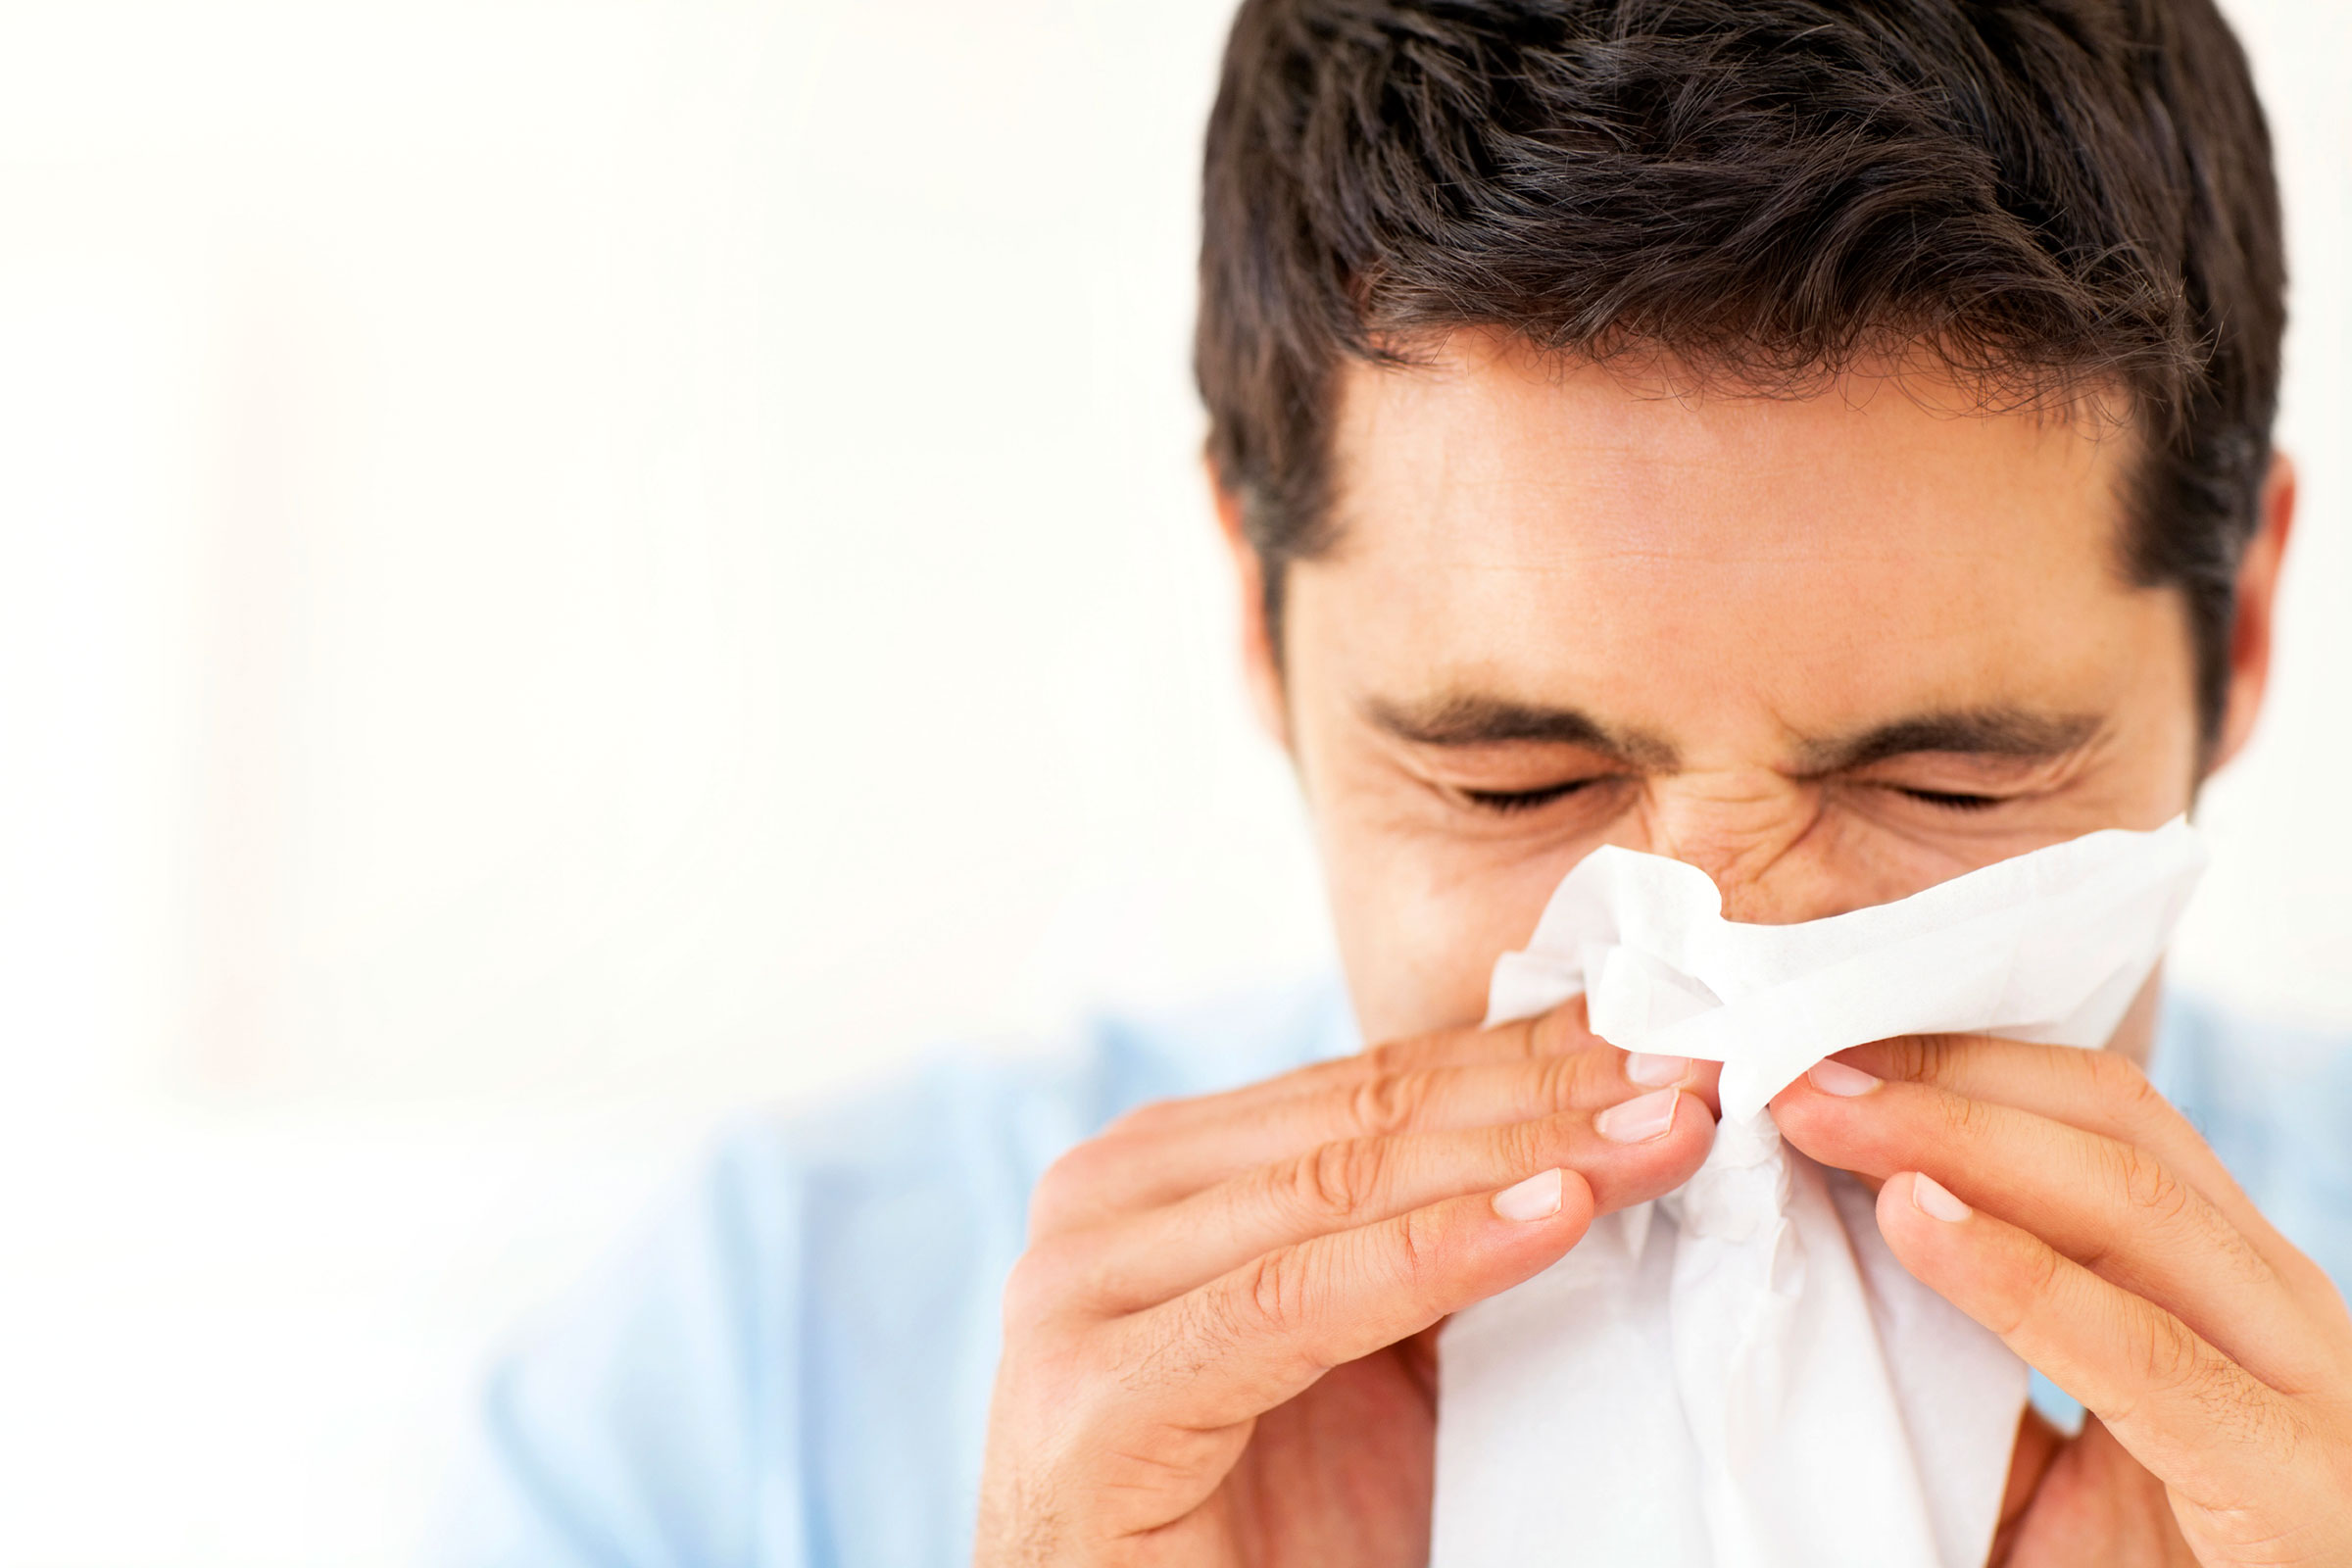 08-worst-advice-allergy-doctor-runny-nose